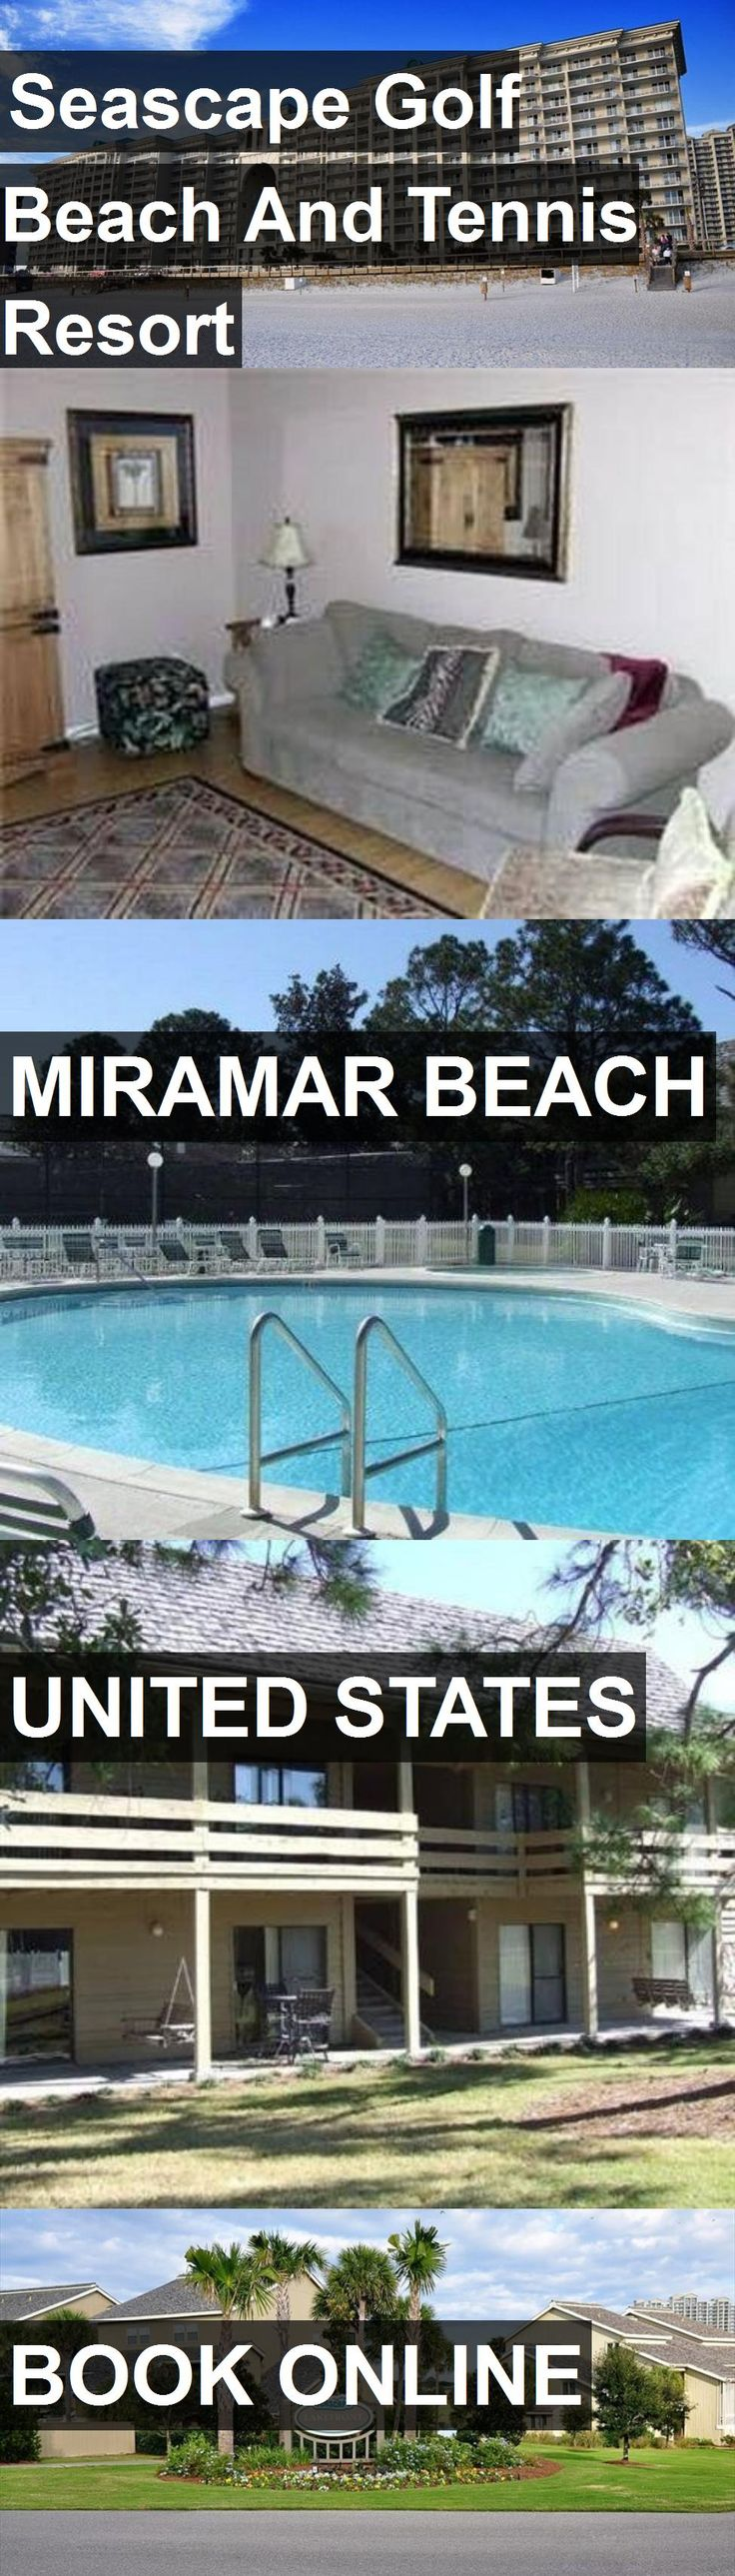 Hotel Seascape Golf Beach And Tennis Resort in Miramar Beach, United States. For more information, photos, reviews and best prices please follow the link. #UnitedStates #MiramarBeach #SeascapeGolfBeachAndTennisResort #hotel #travel #vacation